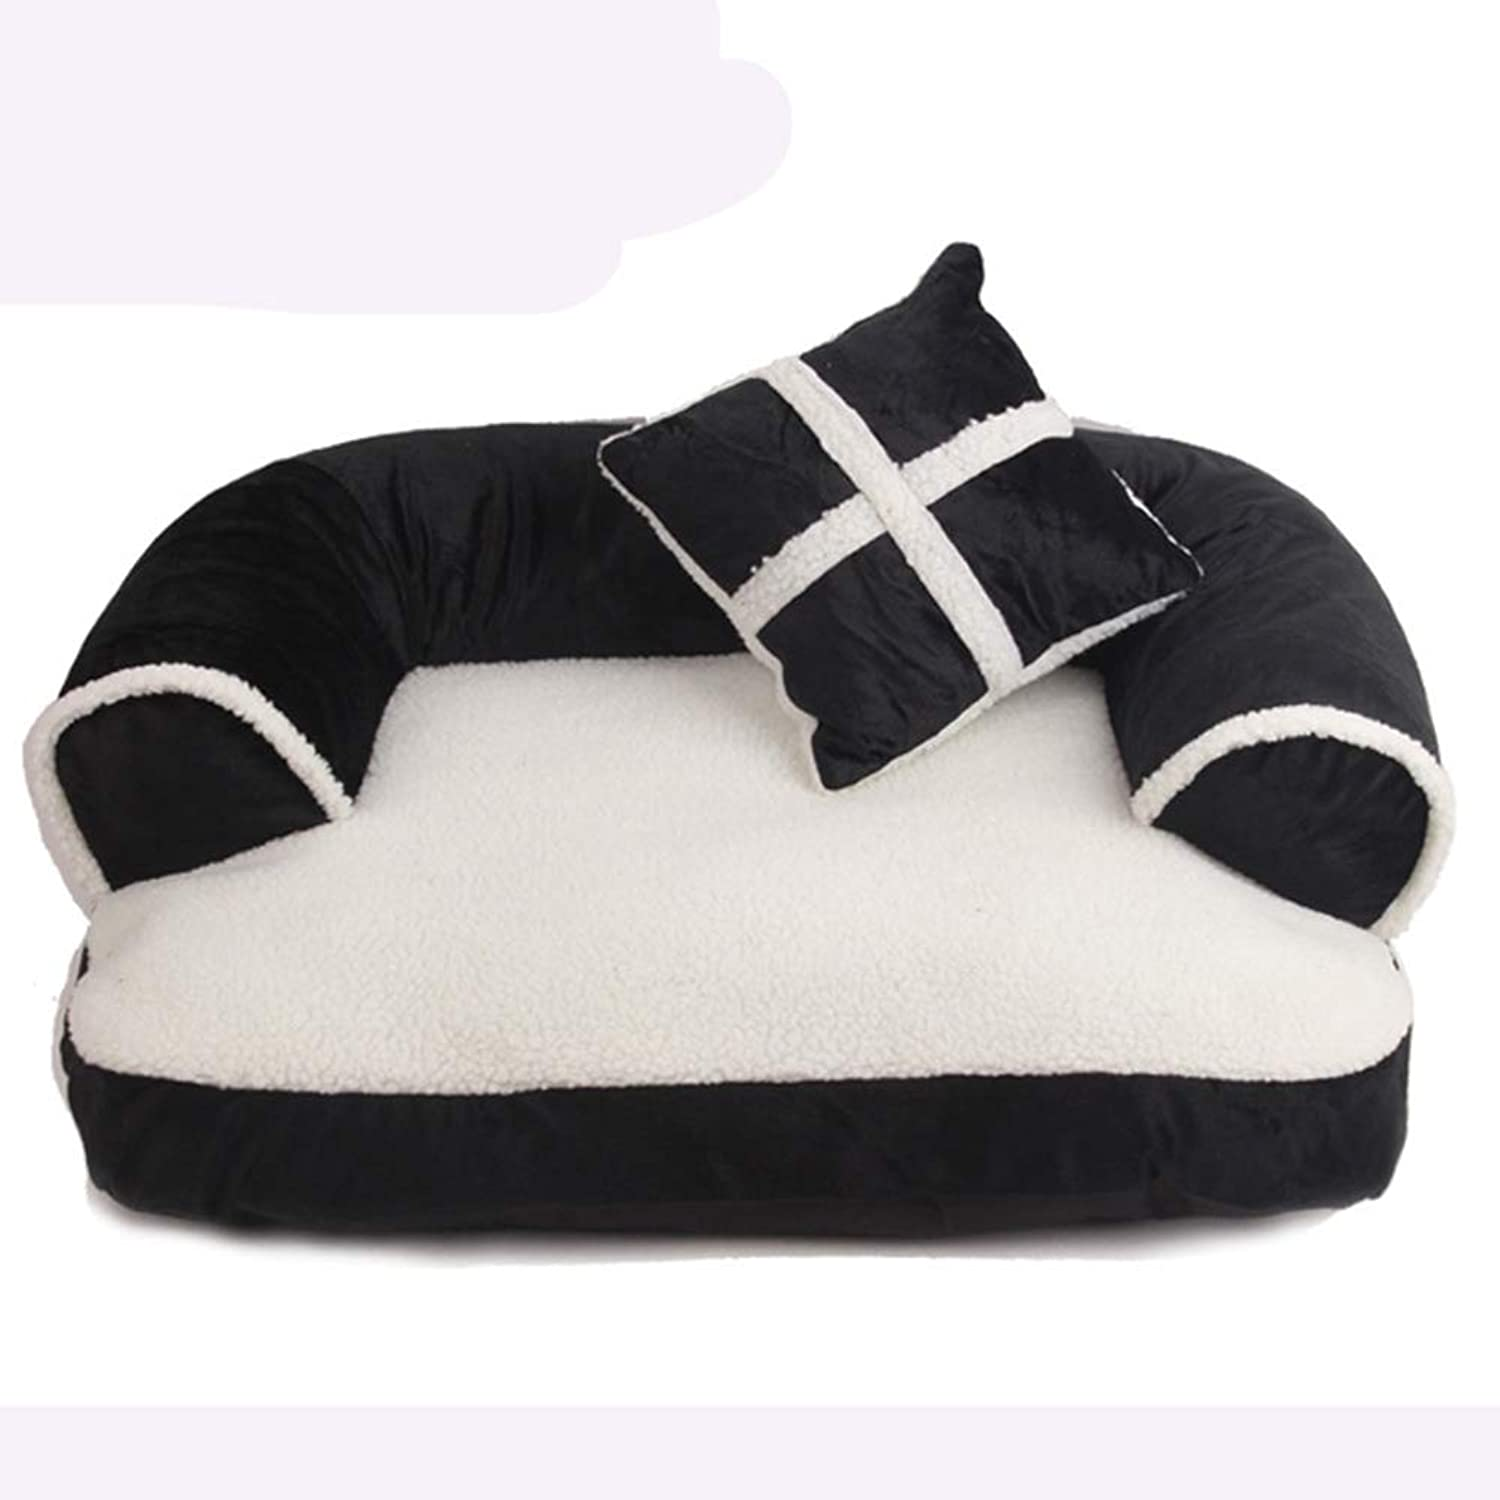 Pet Dog Bed, Plush SofaStyle Couch Pet Bed for Dogs & Cats, Black (Size   70x50cm)